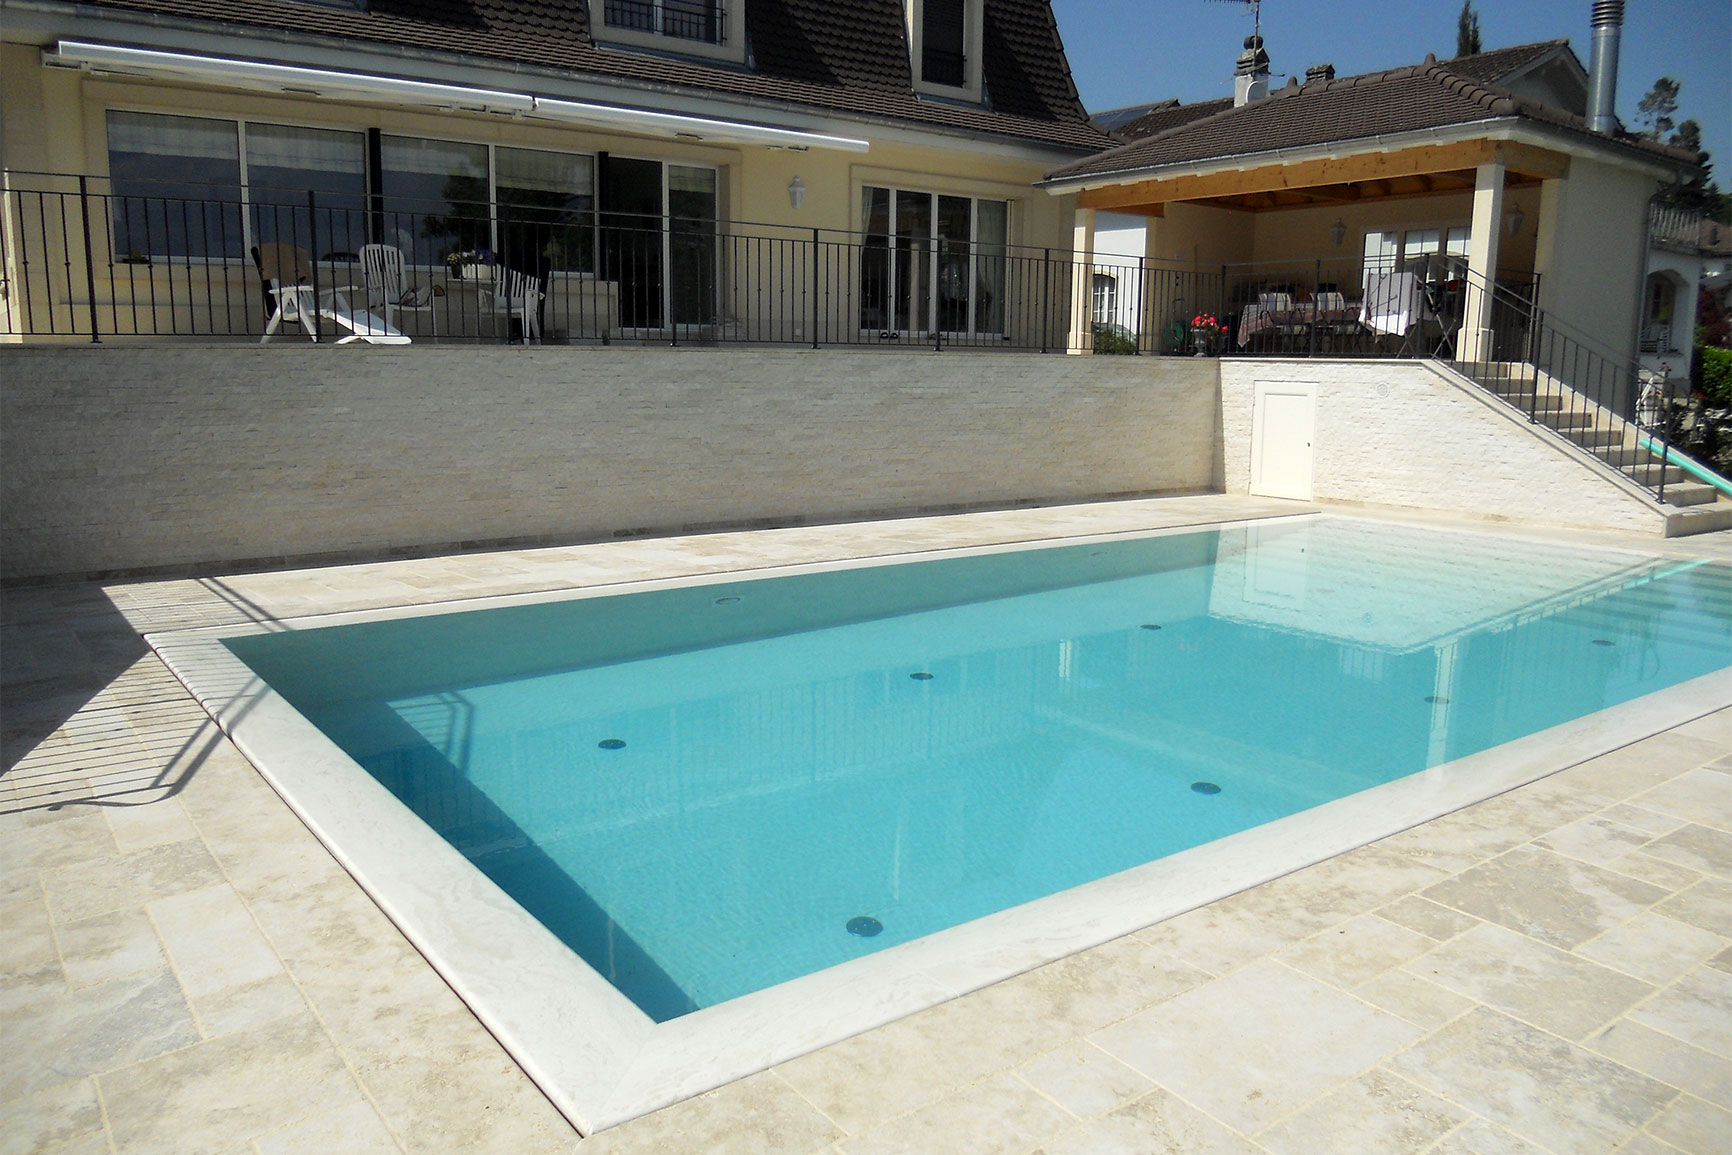 Piscine carrelage et d bordement couverture grando for Securite piscine miroir